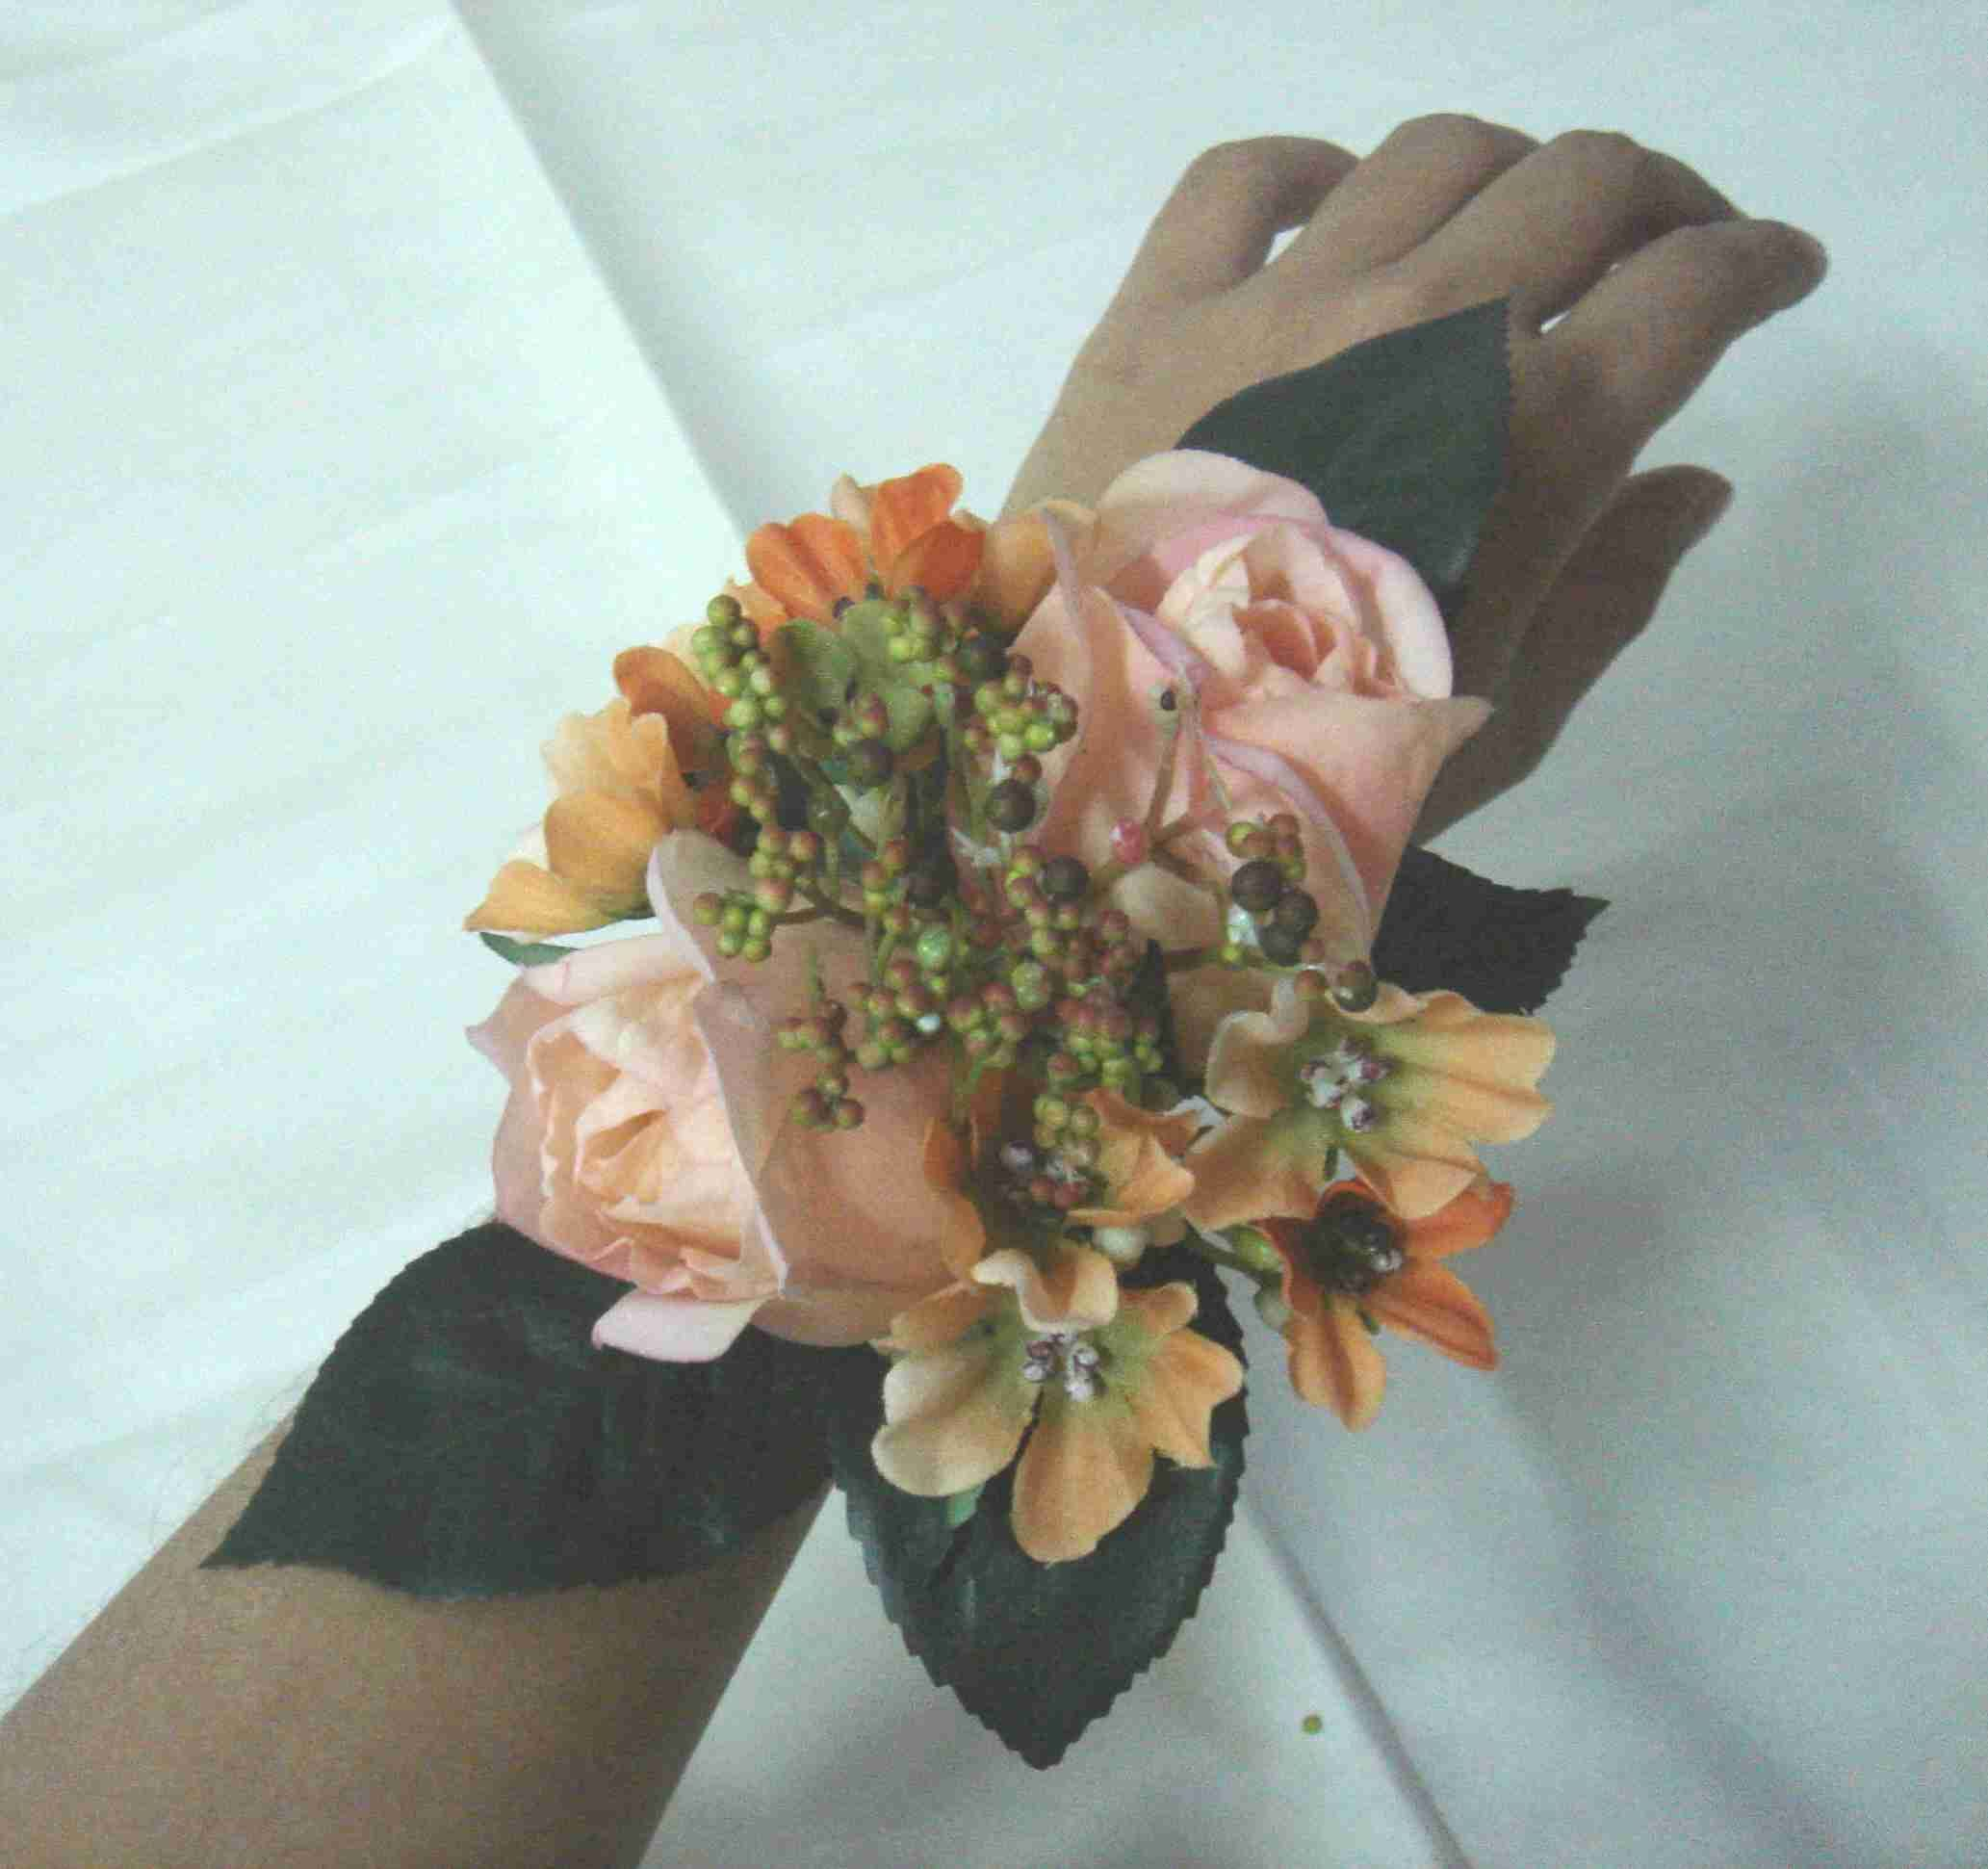 How To Make Wedding Bouquets And Corsages : Rose wrist corsage steps on how to make craft ideas